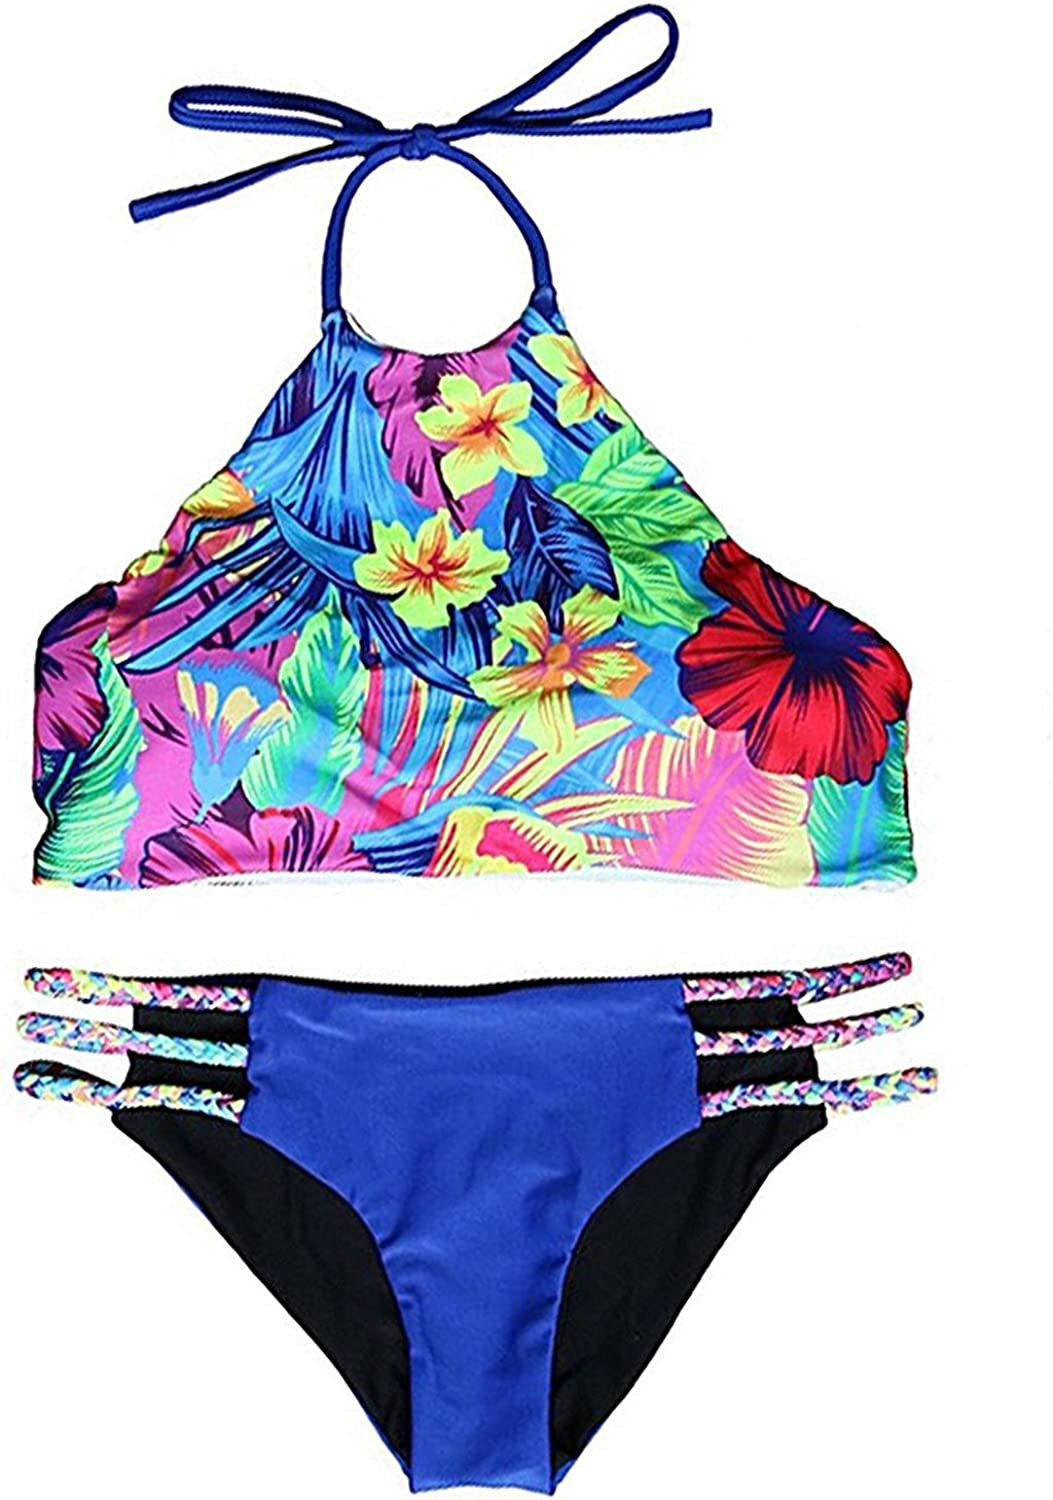 Speciall Pily Charming Women's colorful Floral Printing 2 Piece Push up Padded Bikini Swimsuit